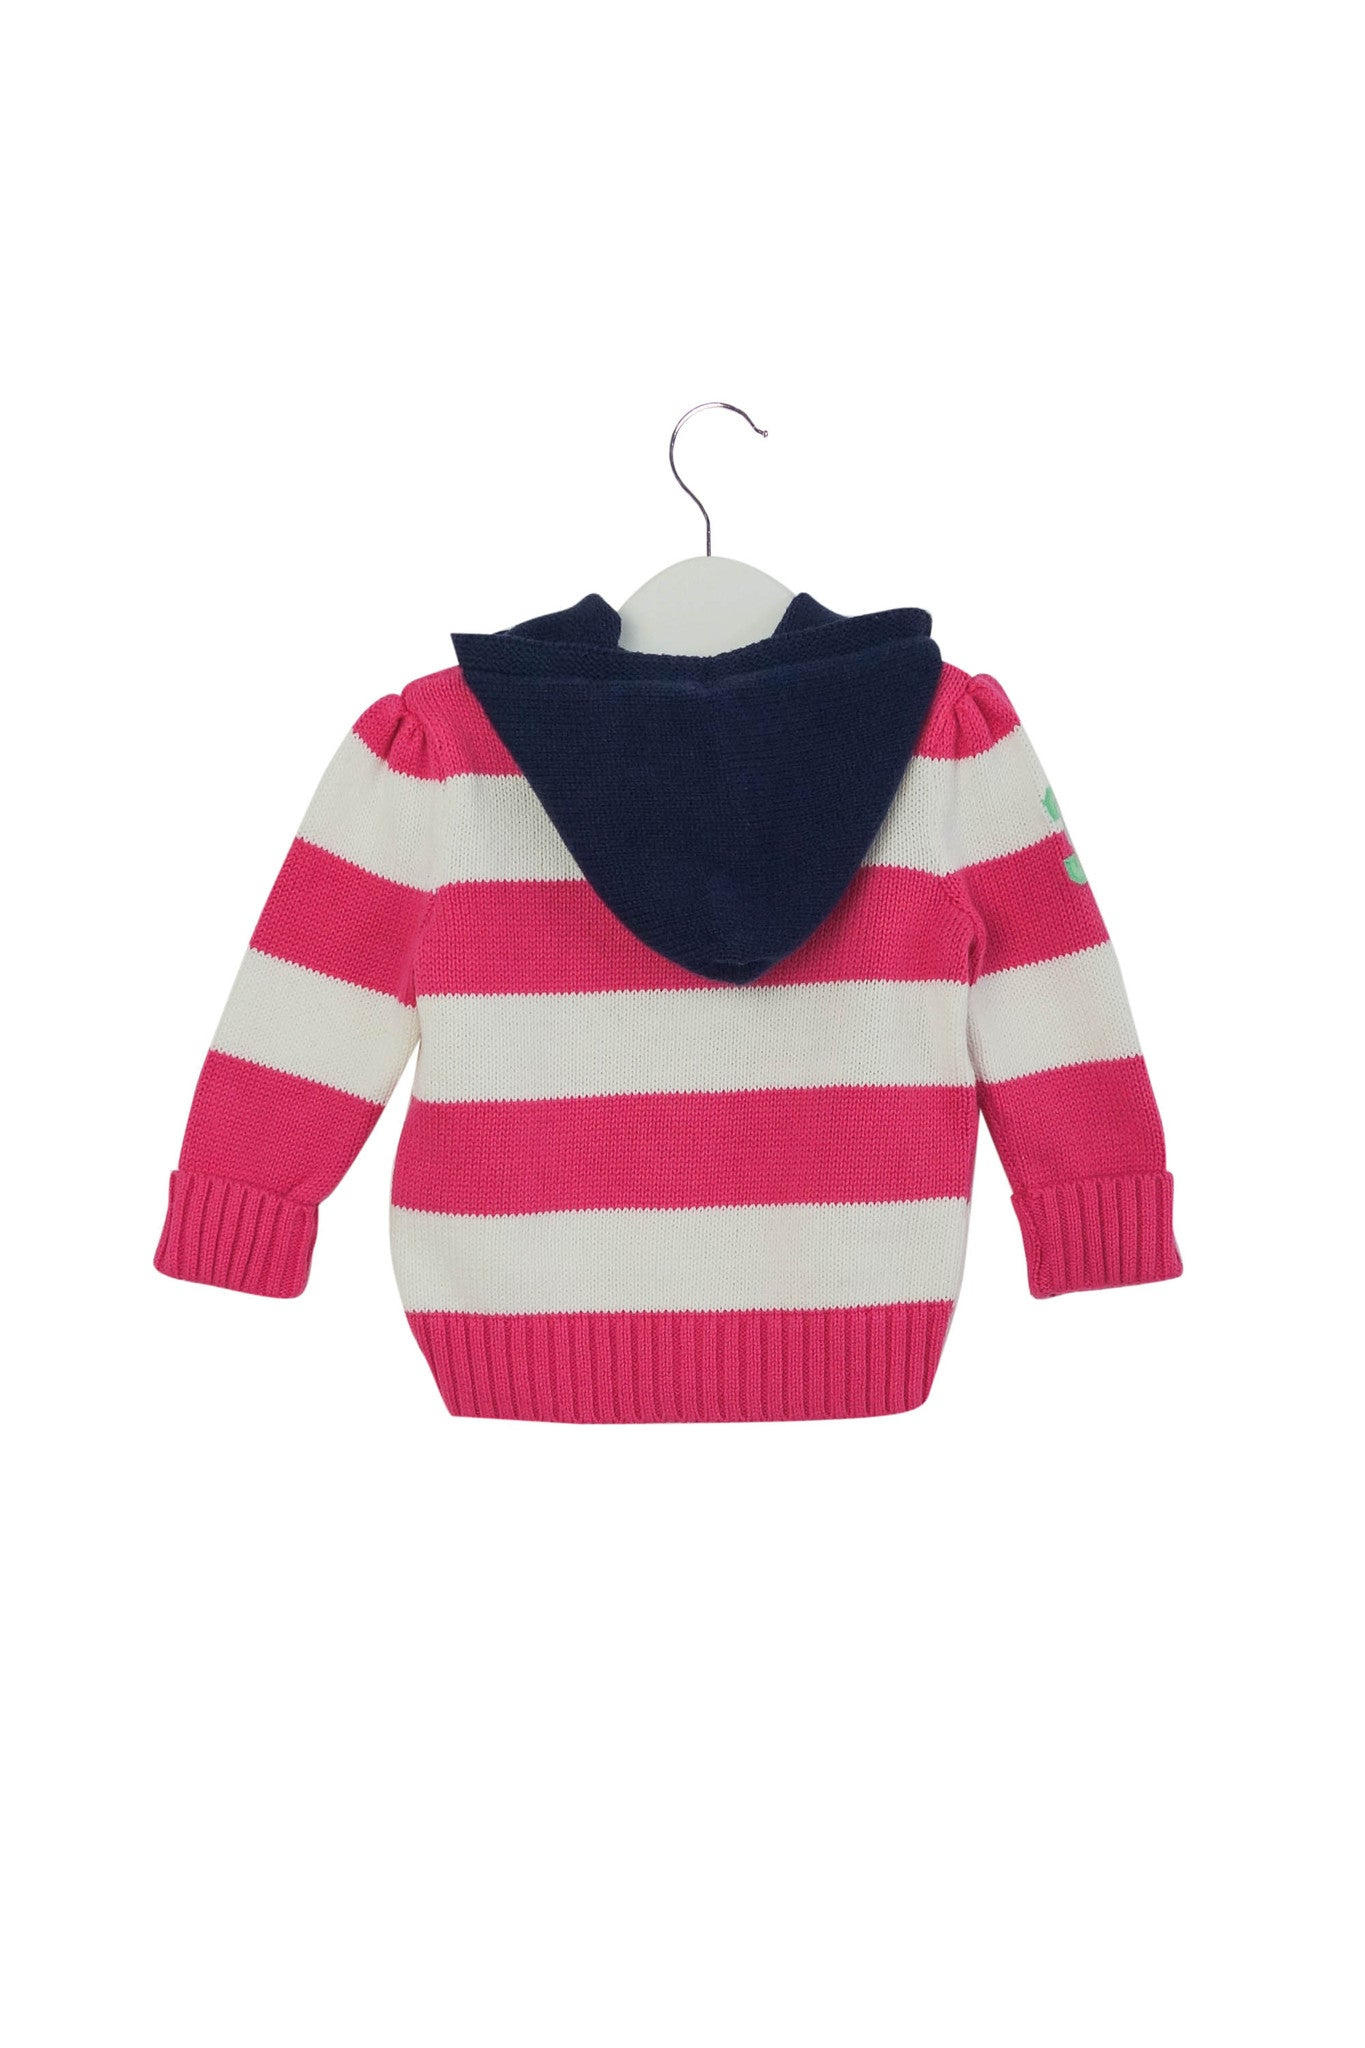 10003193 Ralph Lauren Baby~Cardigan 6M at Retykle